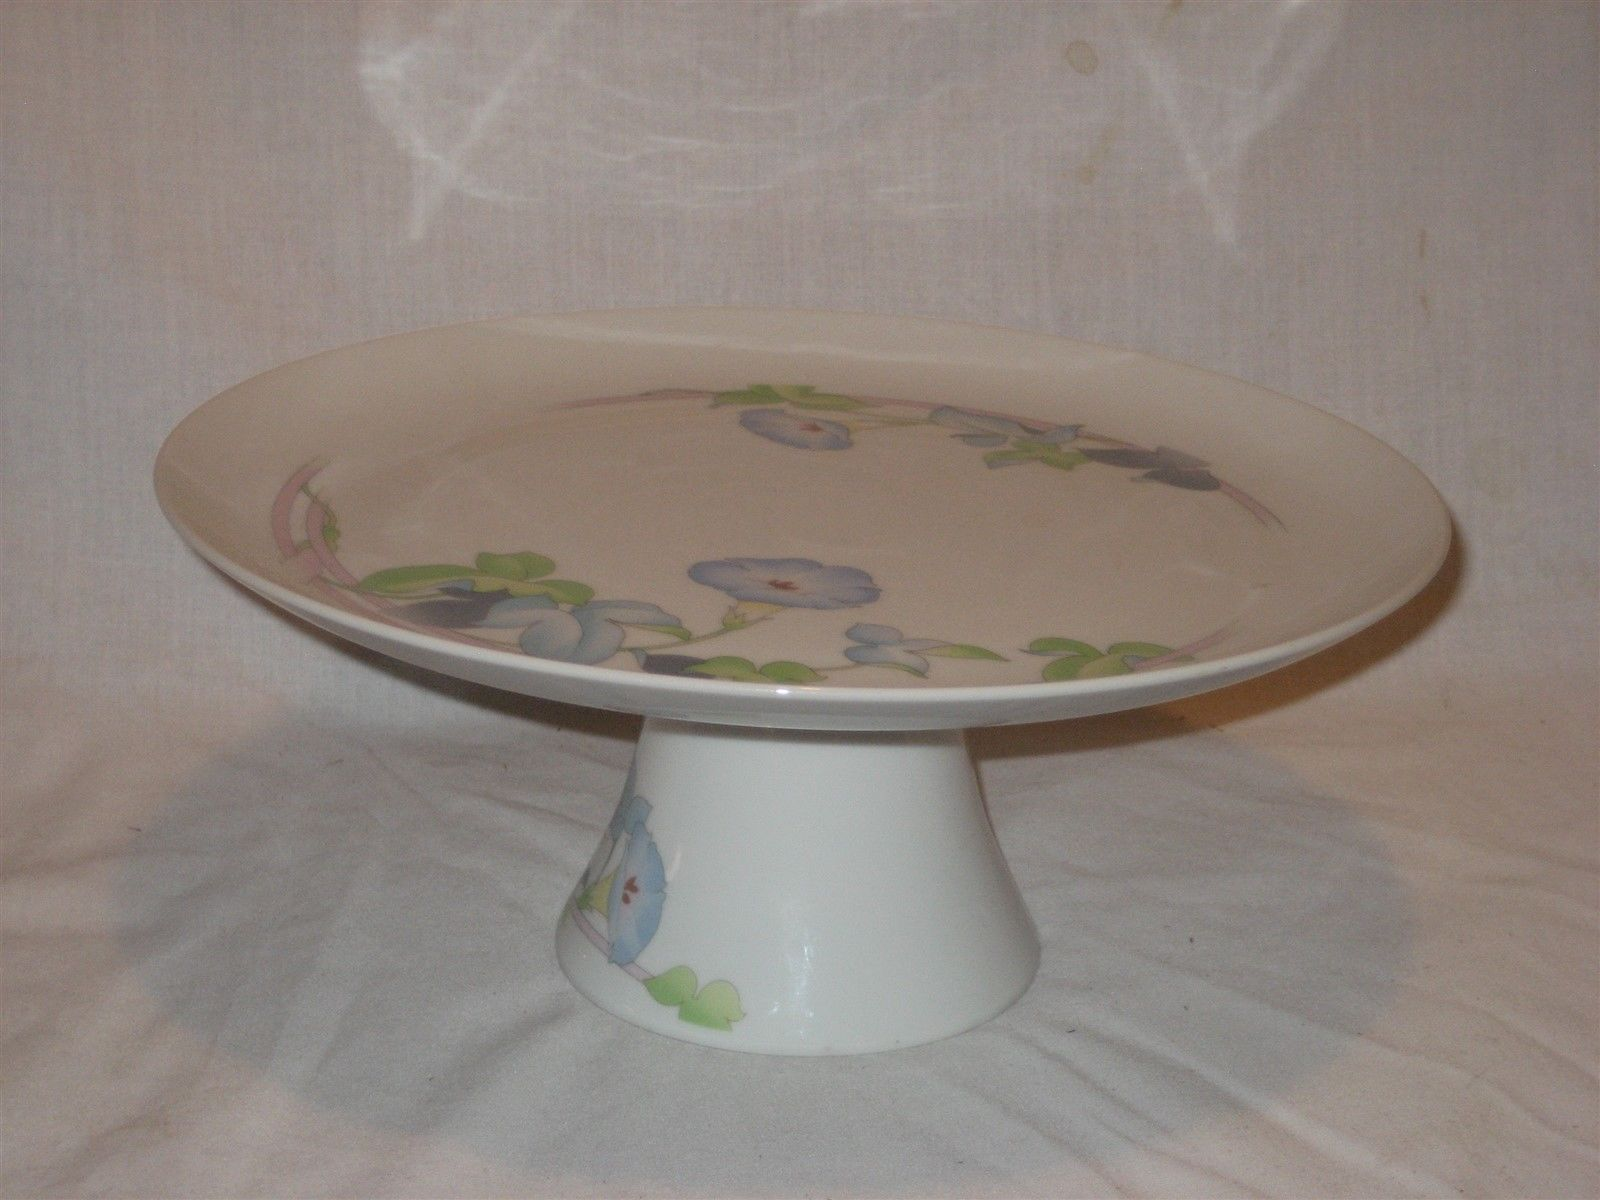 Westbury The Toscany Collection White Pedestal Cake Platter Serving Tray Japan - $18.65